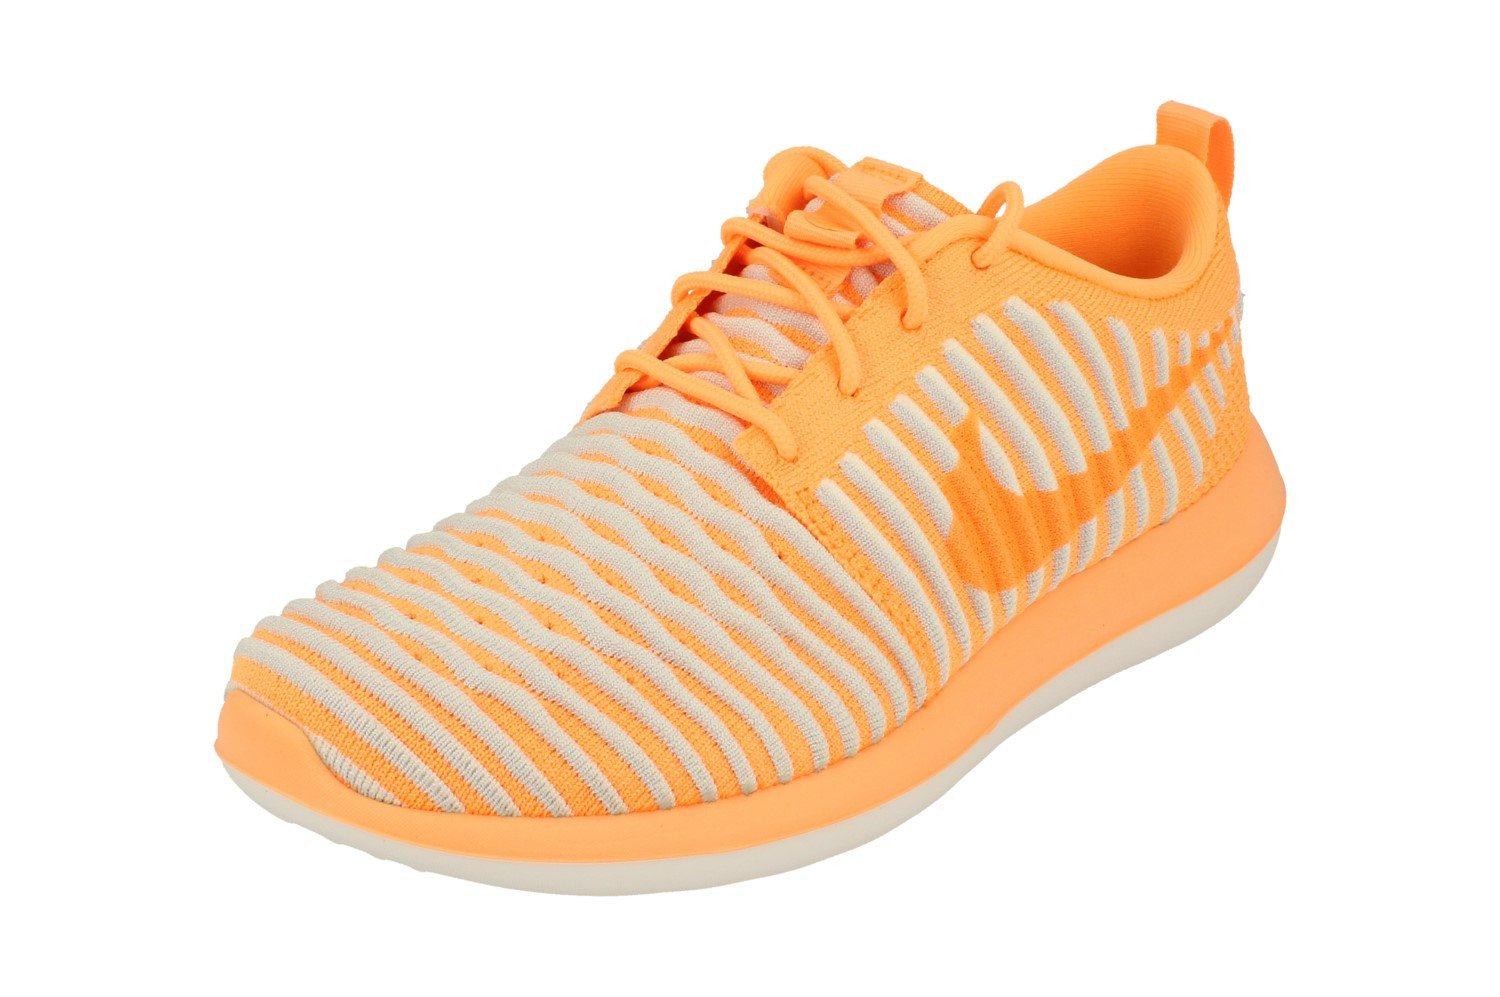 huge selection of c7c0e 96dc0 Galleon - Nike Womens Roshe Two Flyknit Running Trainers 844929 Sneakers  Shoes (UK 4.5 US 7 EU 38, Peach Cream 800)